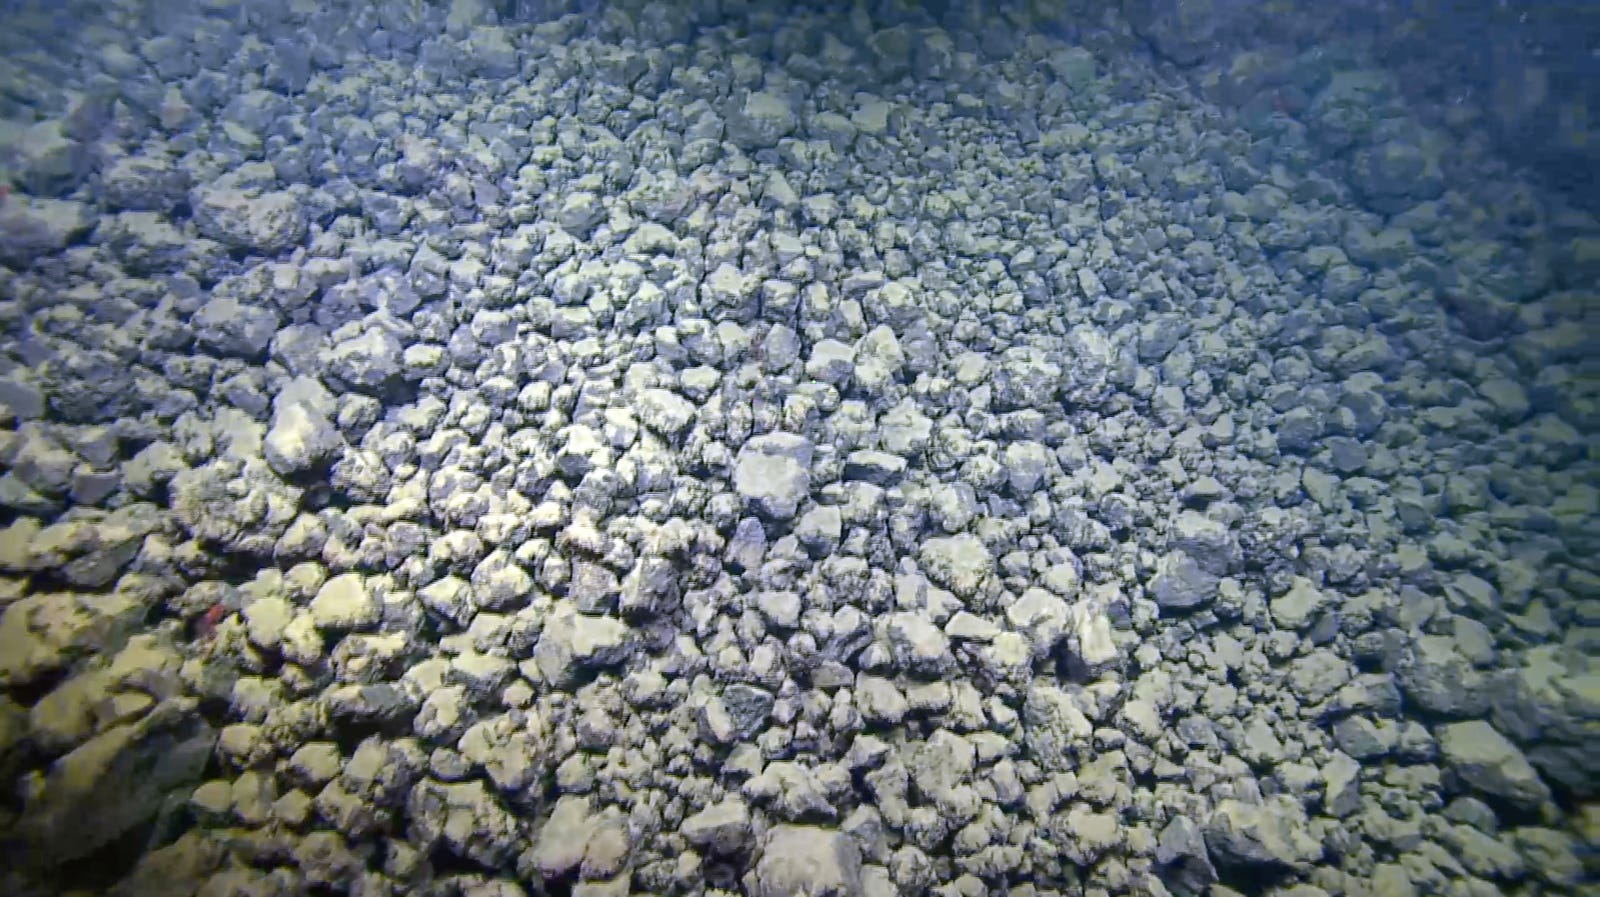 Broken lava fragments, such as those shown here, comprise the majority of Kilauea's undersea lava delta.